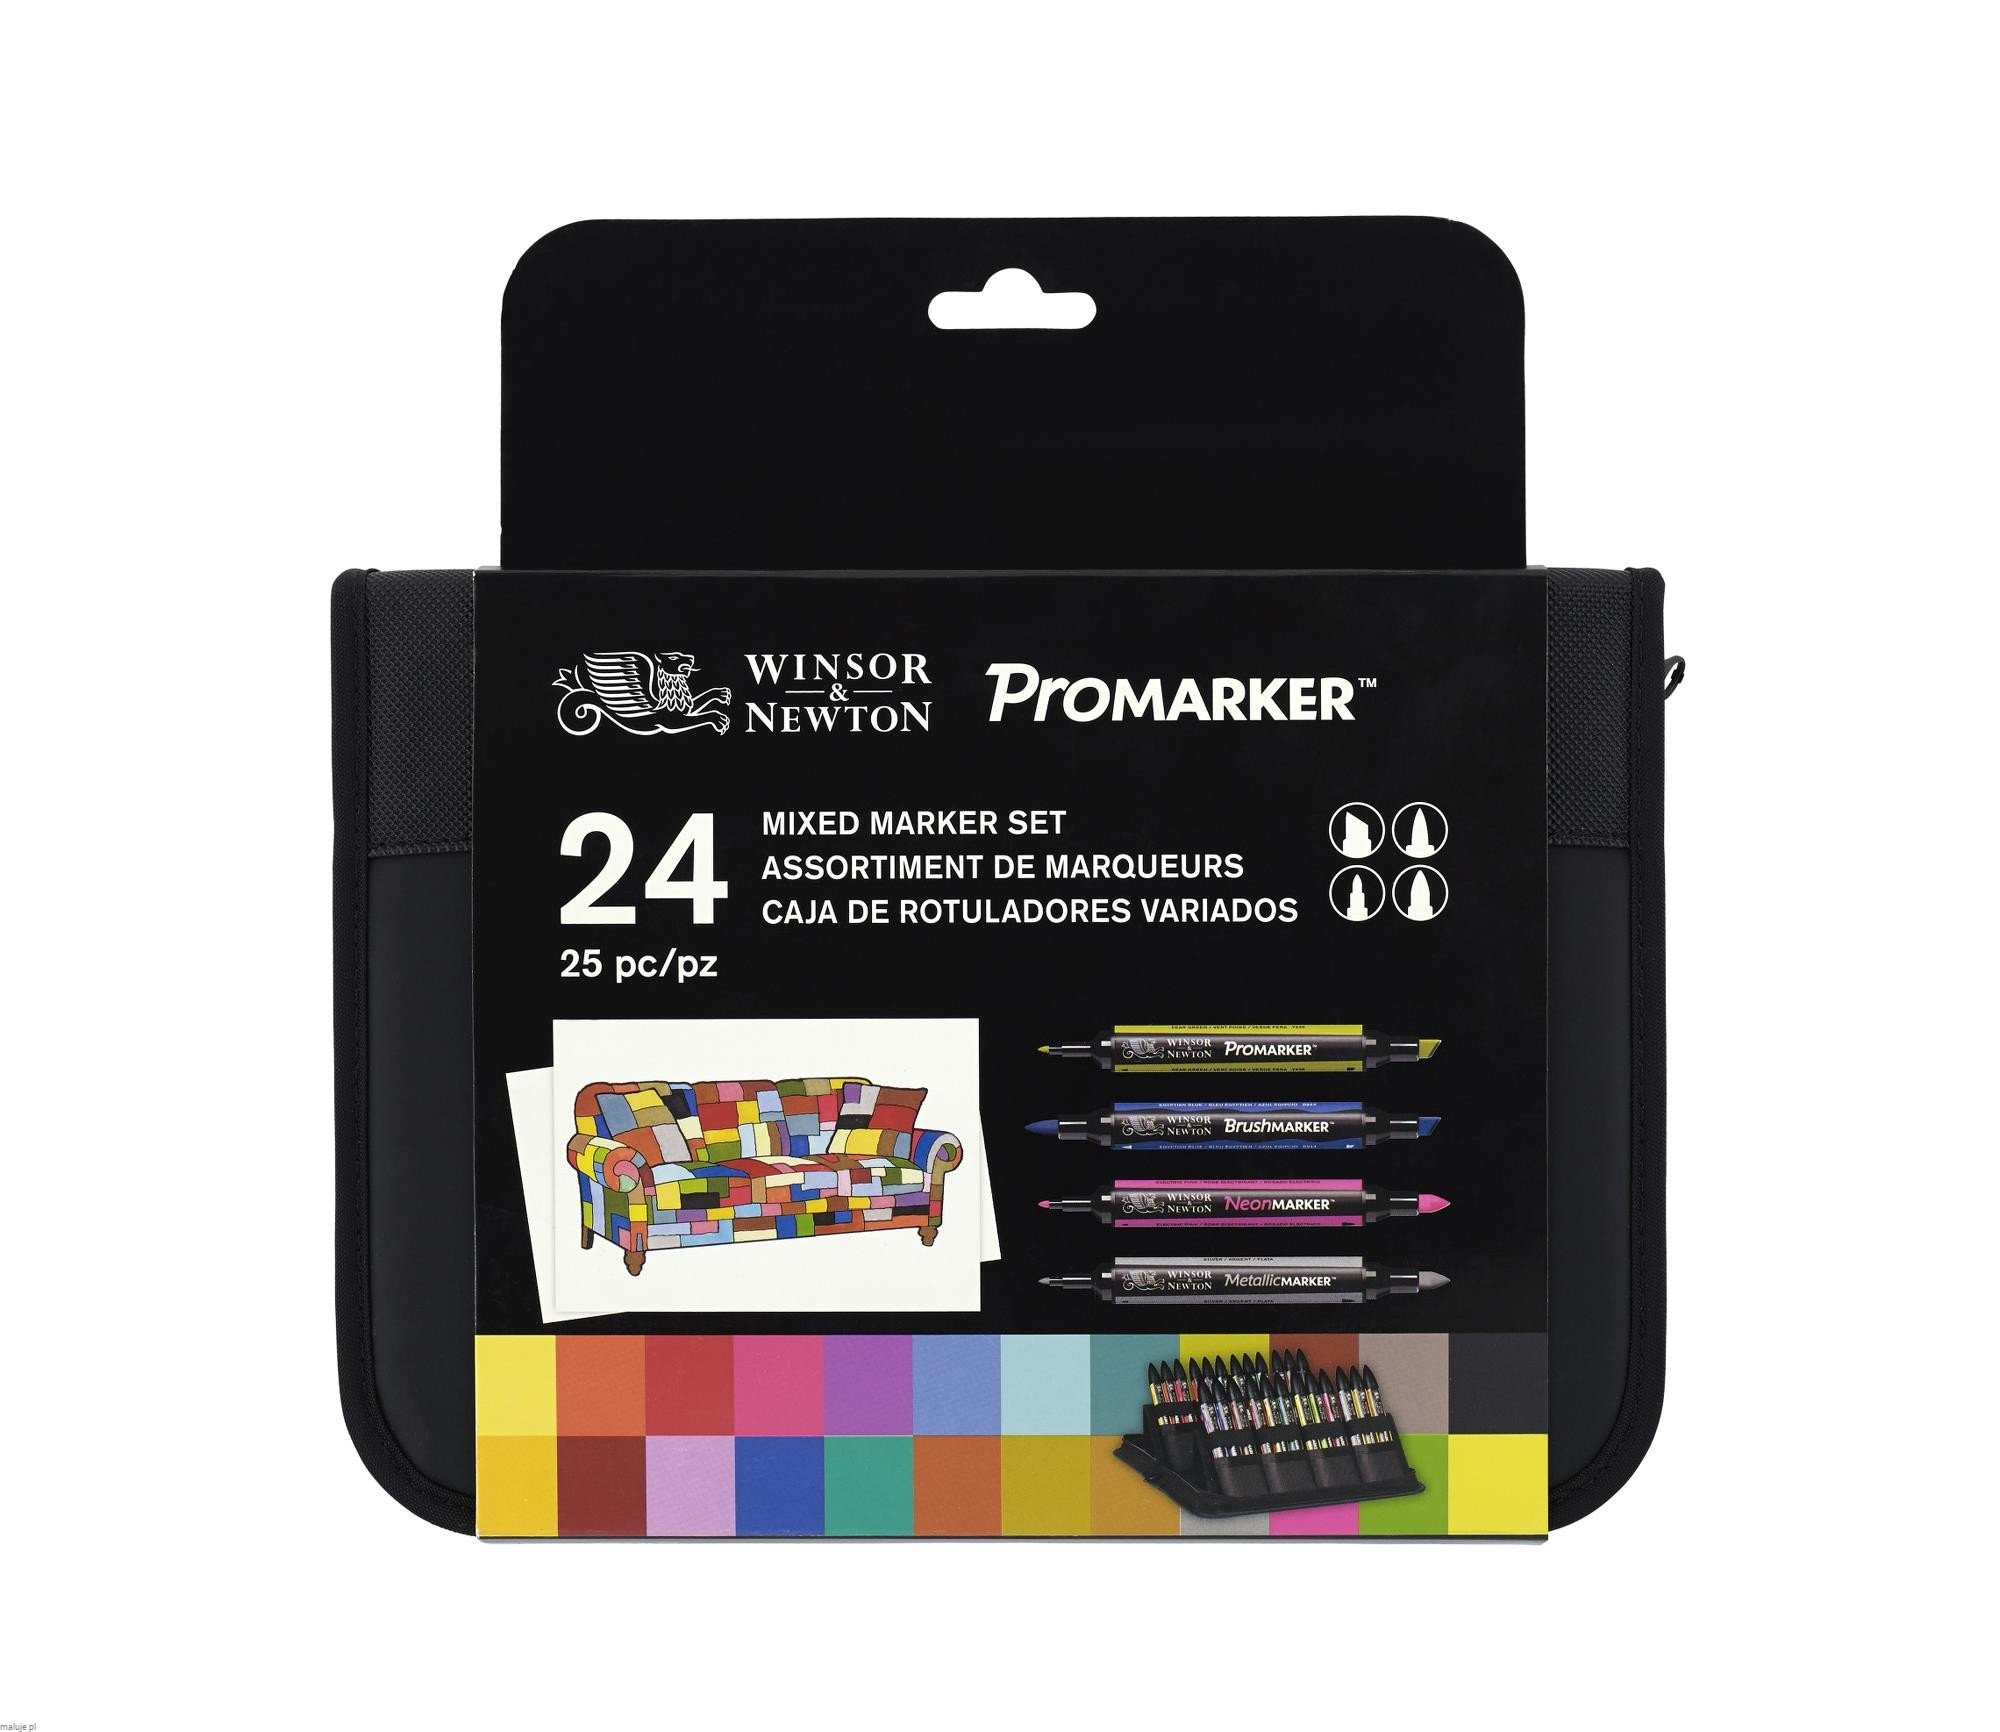 Miexed Media Marker Set - komplet 24 markerów + etui